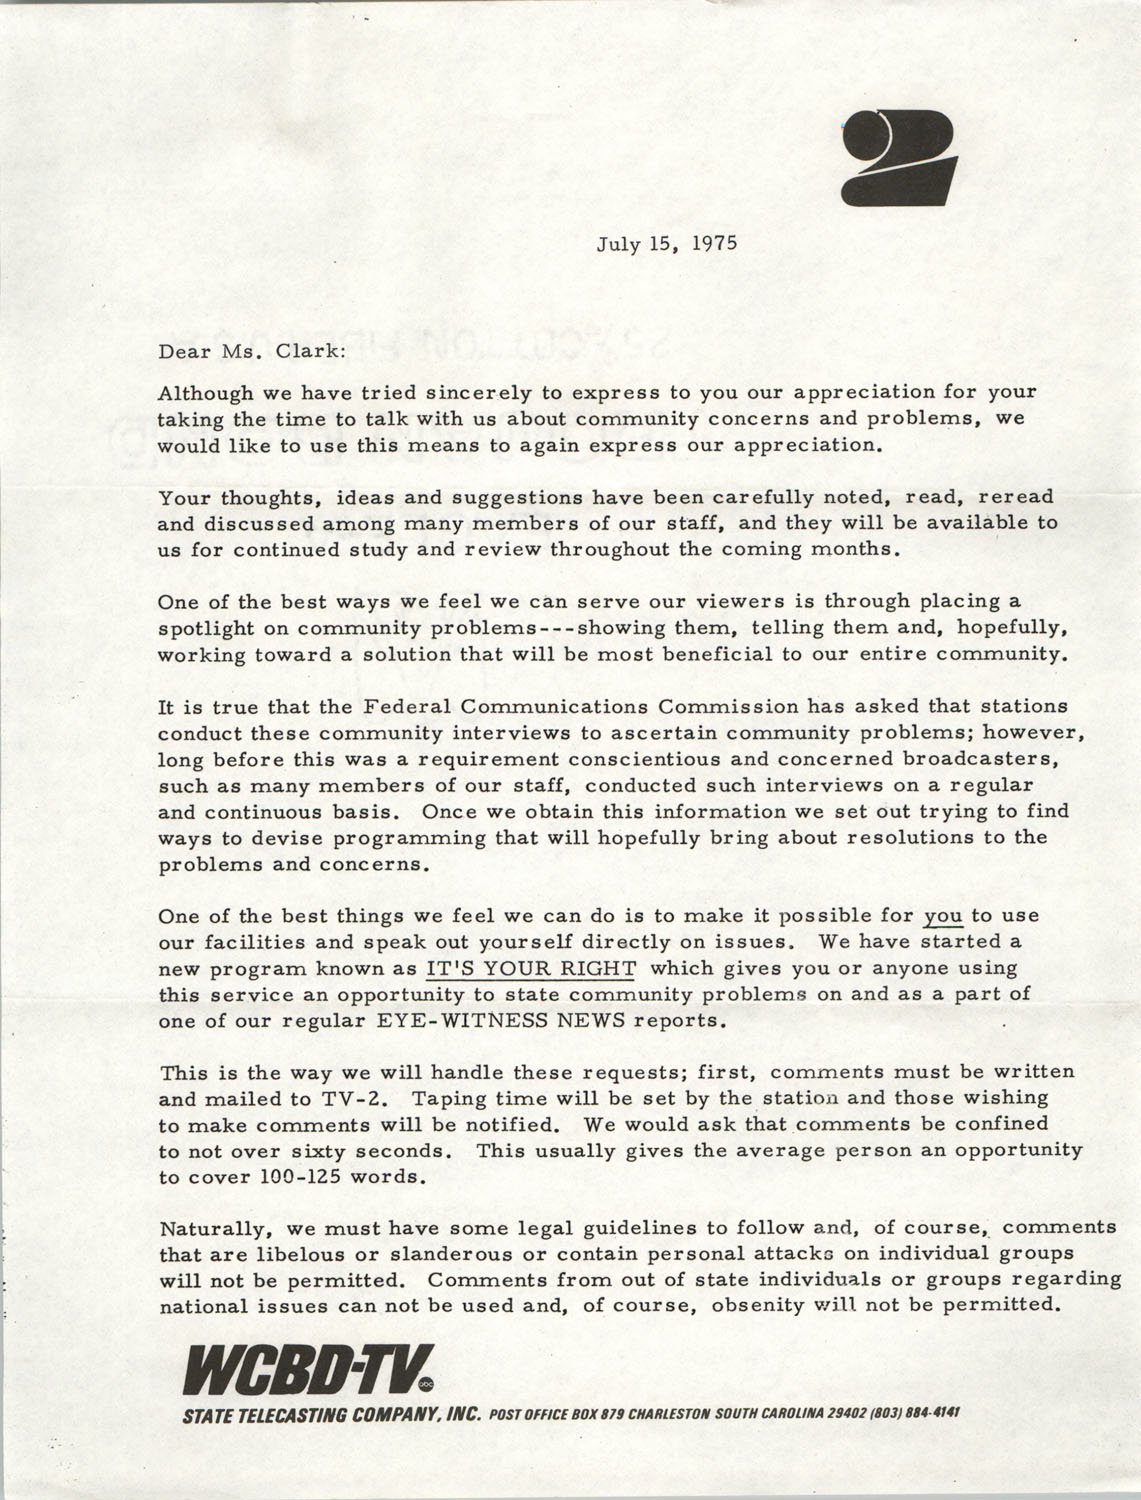 Letter from Carter C. Hardwick, Jr. to Septima P. Clark, July 15, 1975